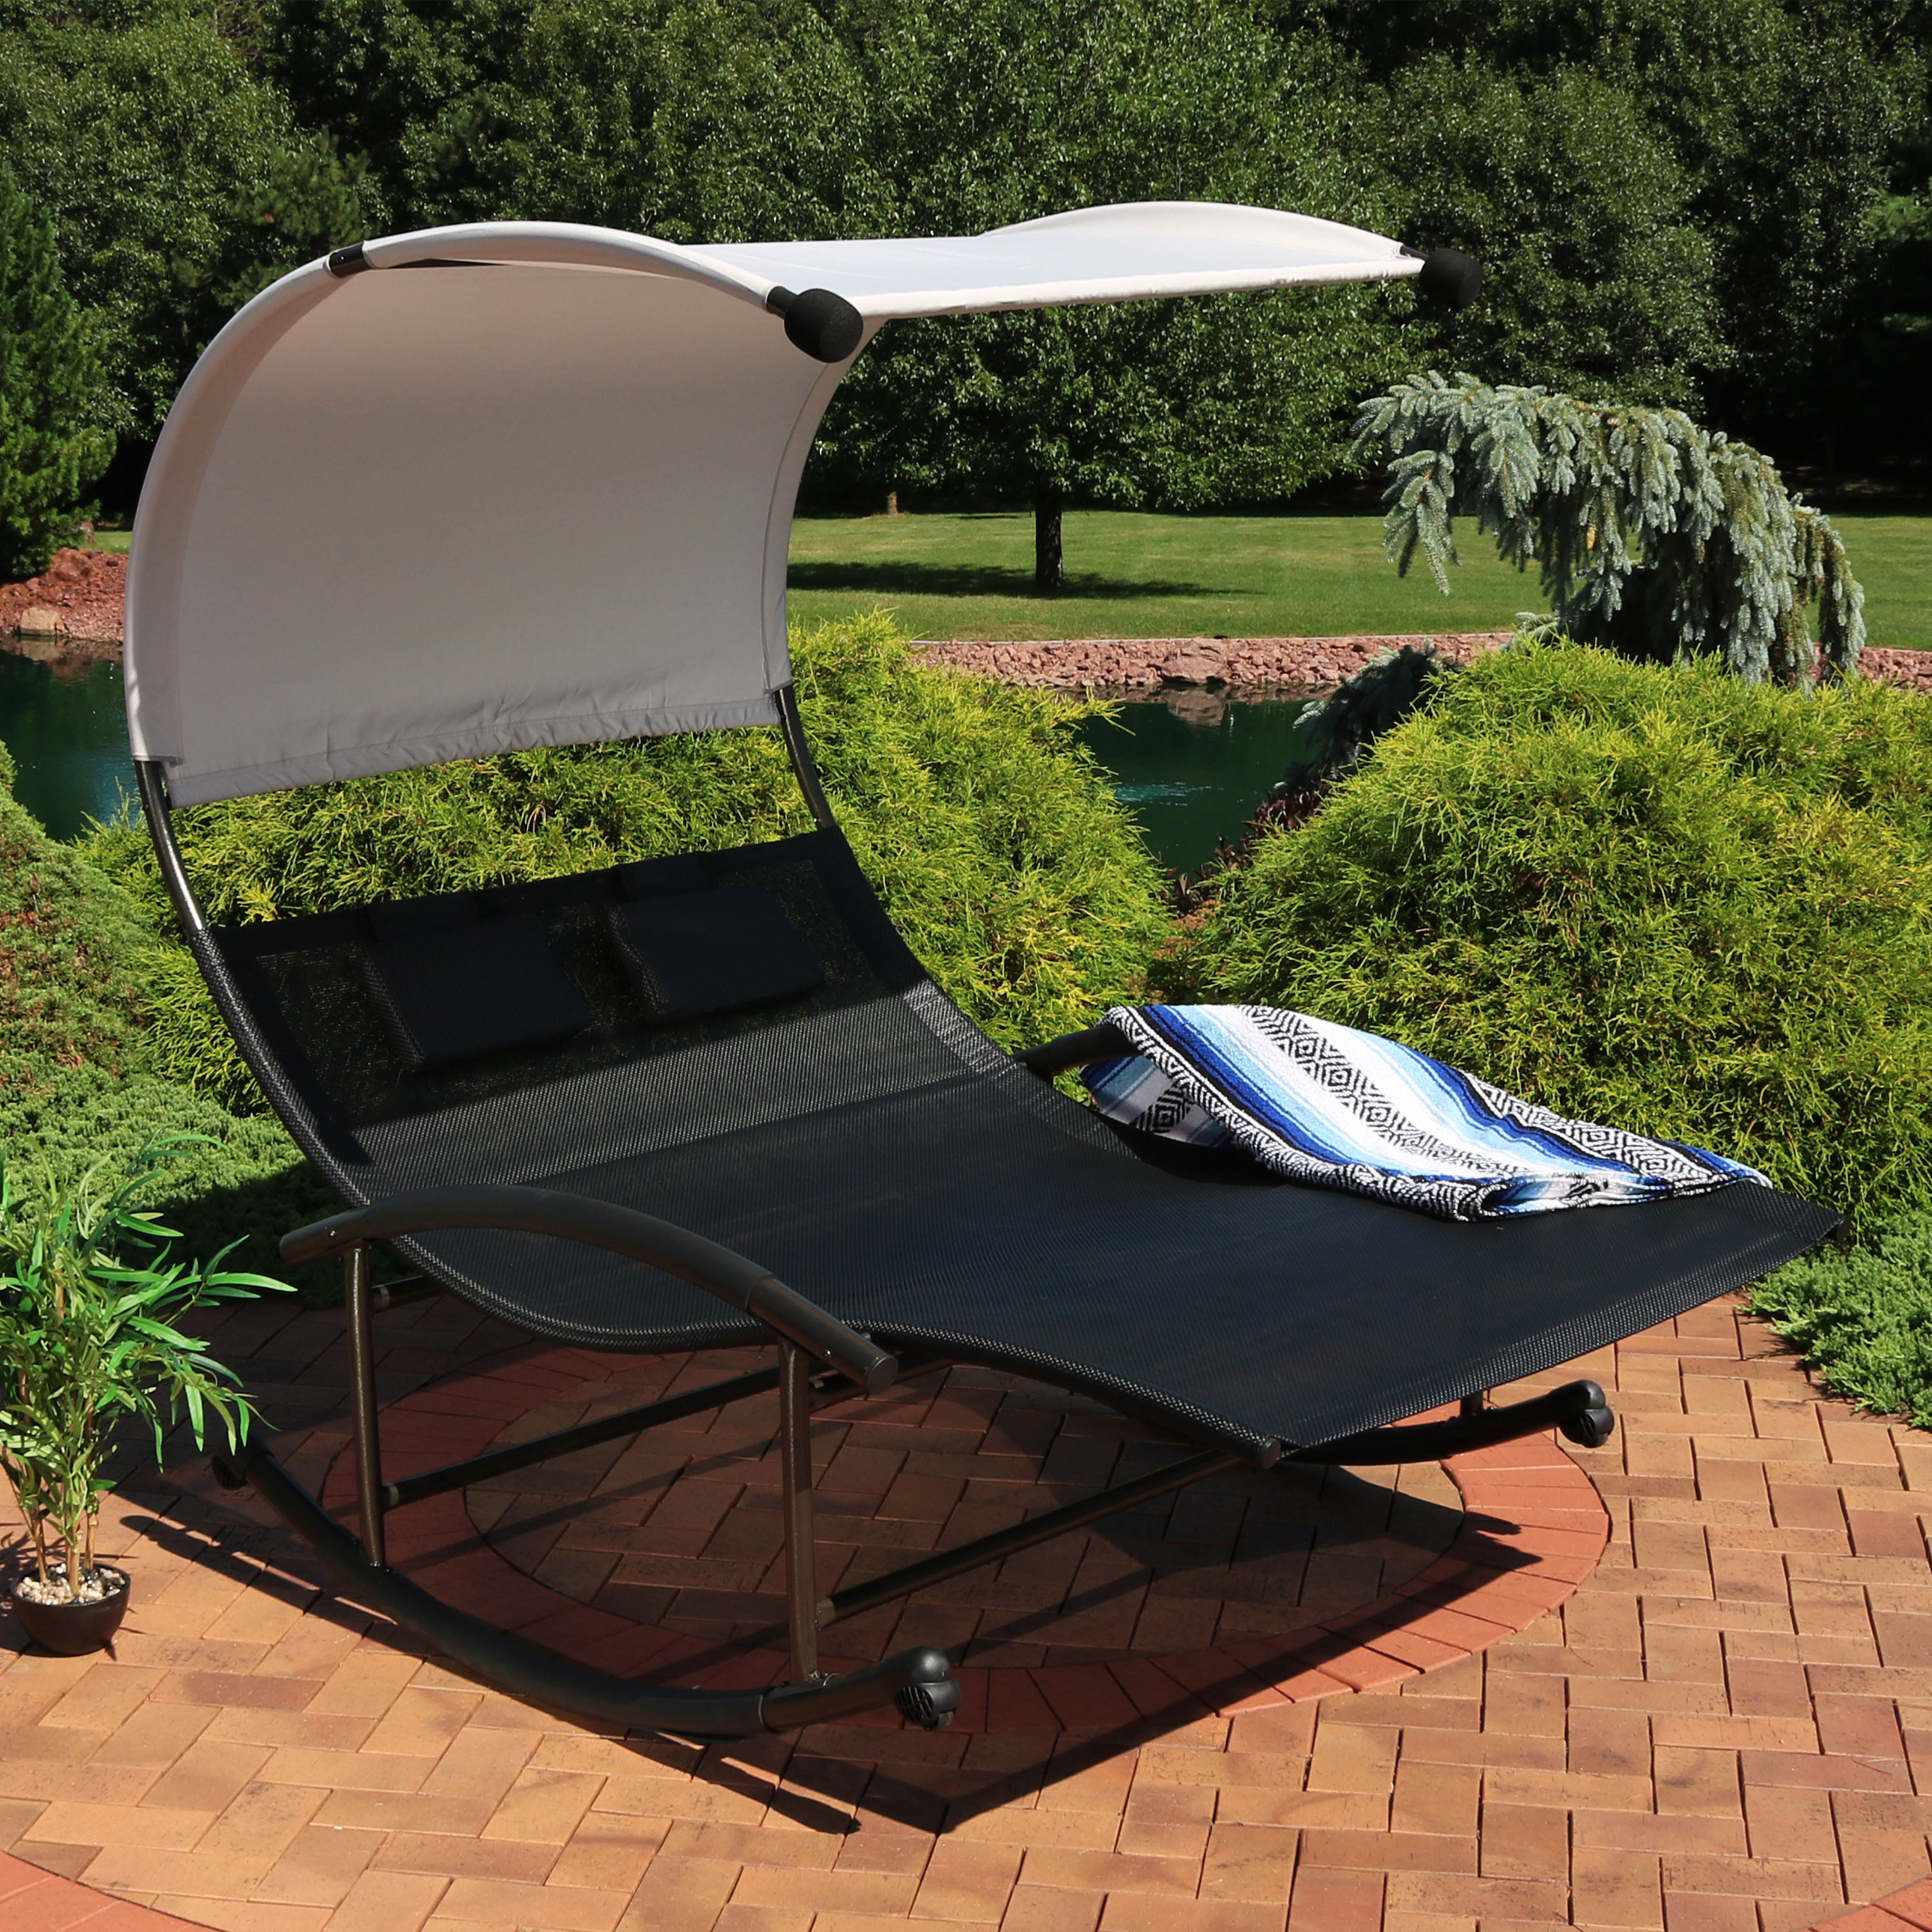 Sunnydaze Outdoor Double Chaise Rocking Lounge Chair With Canopy Shade And  Headrest Pillows, Portable Patio